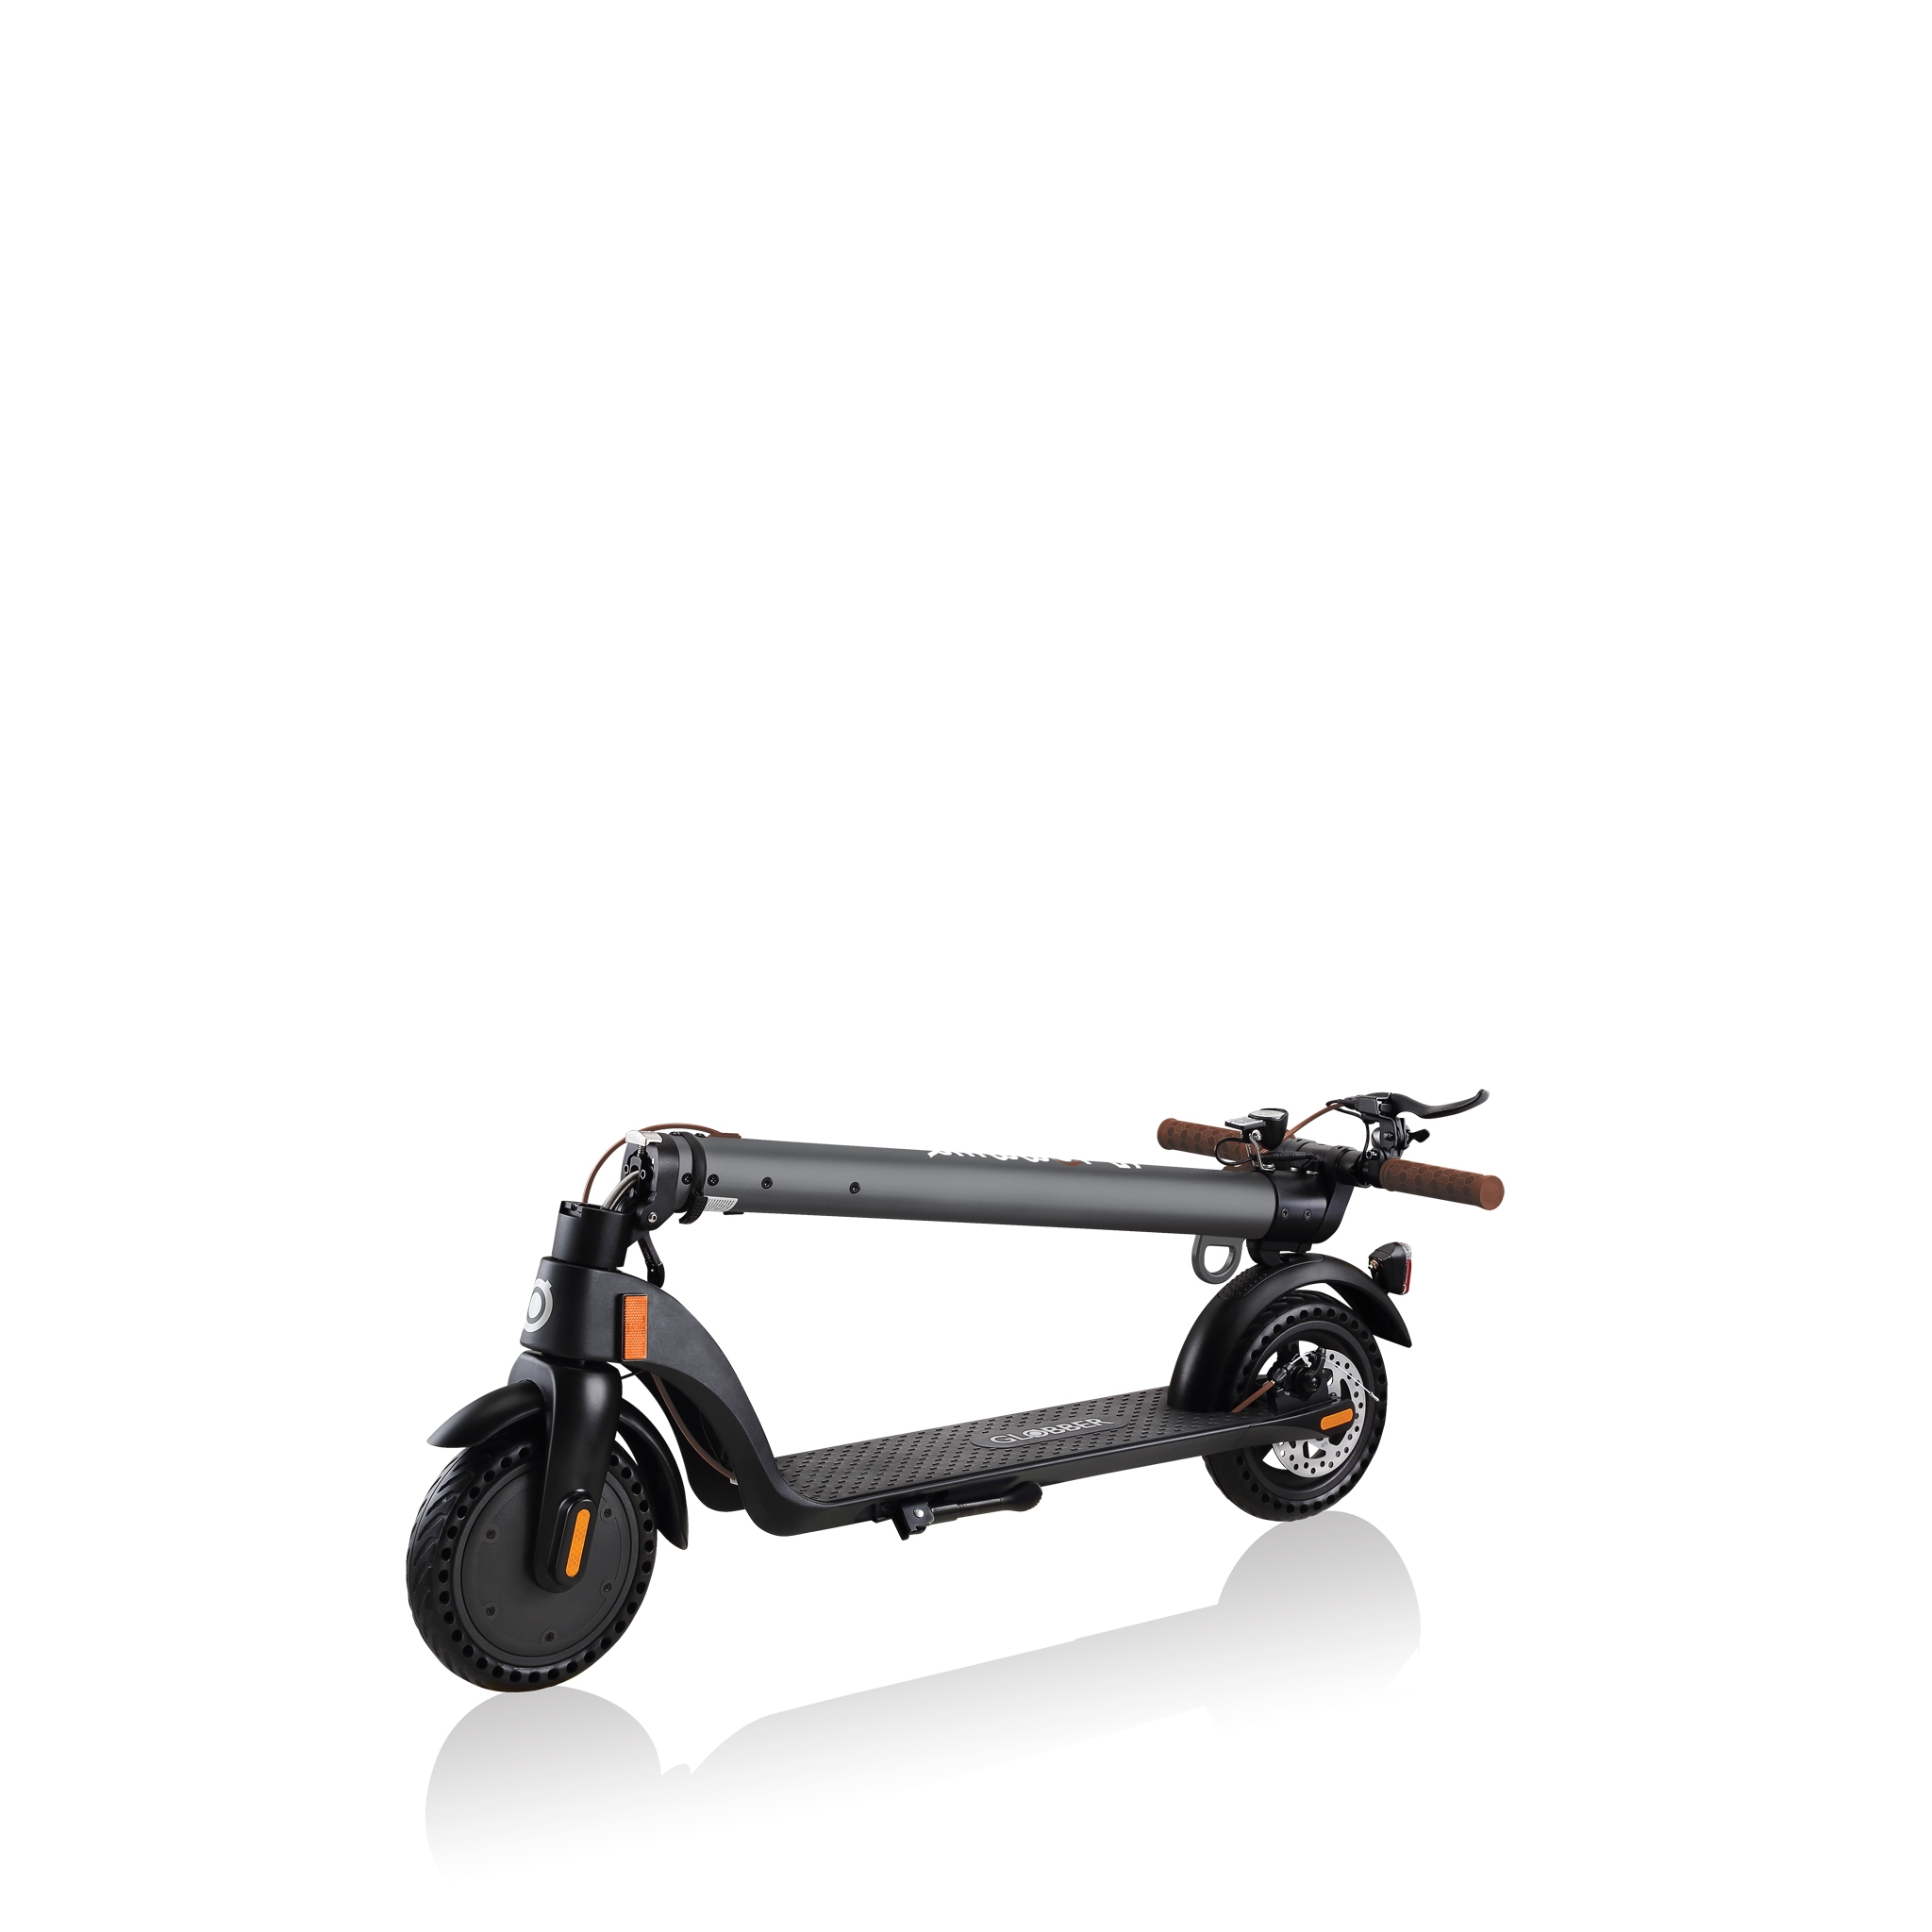 Globber-ONE-K-E-MOTION-23-foldable-electric-scooter-for-teens-and-adults 7